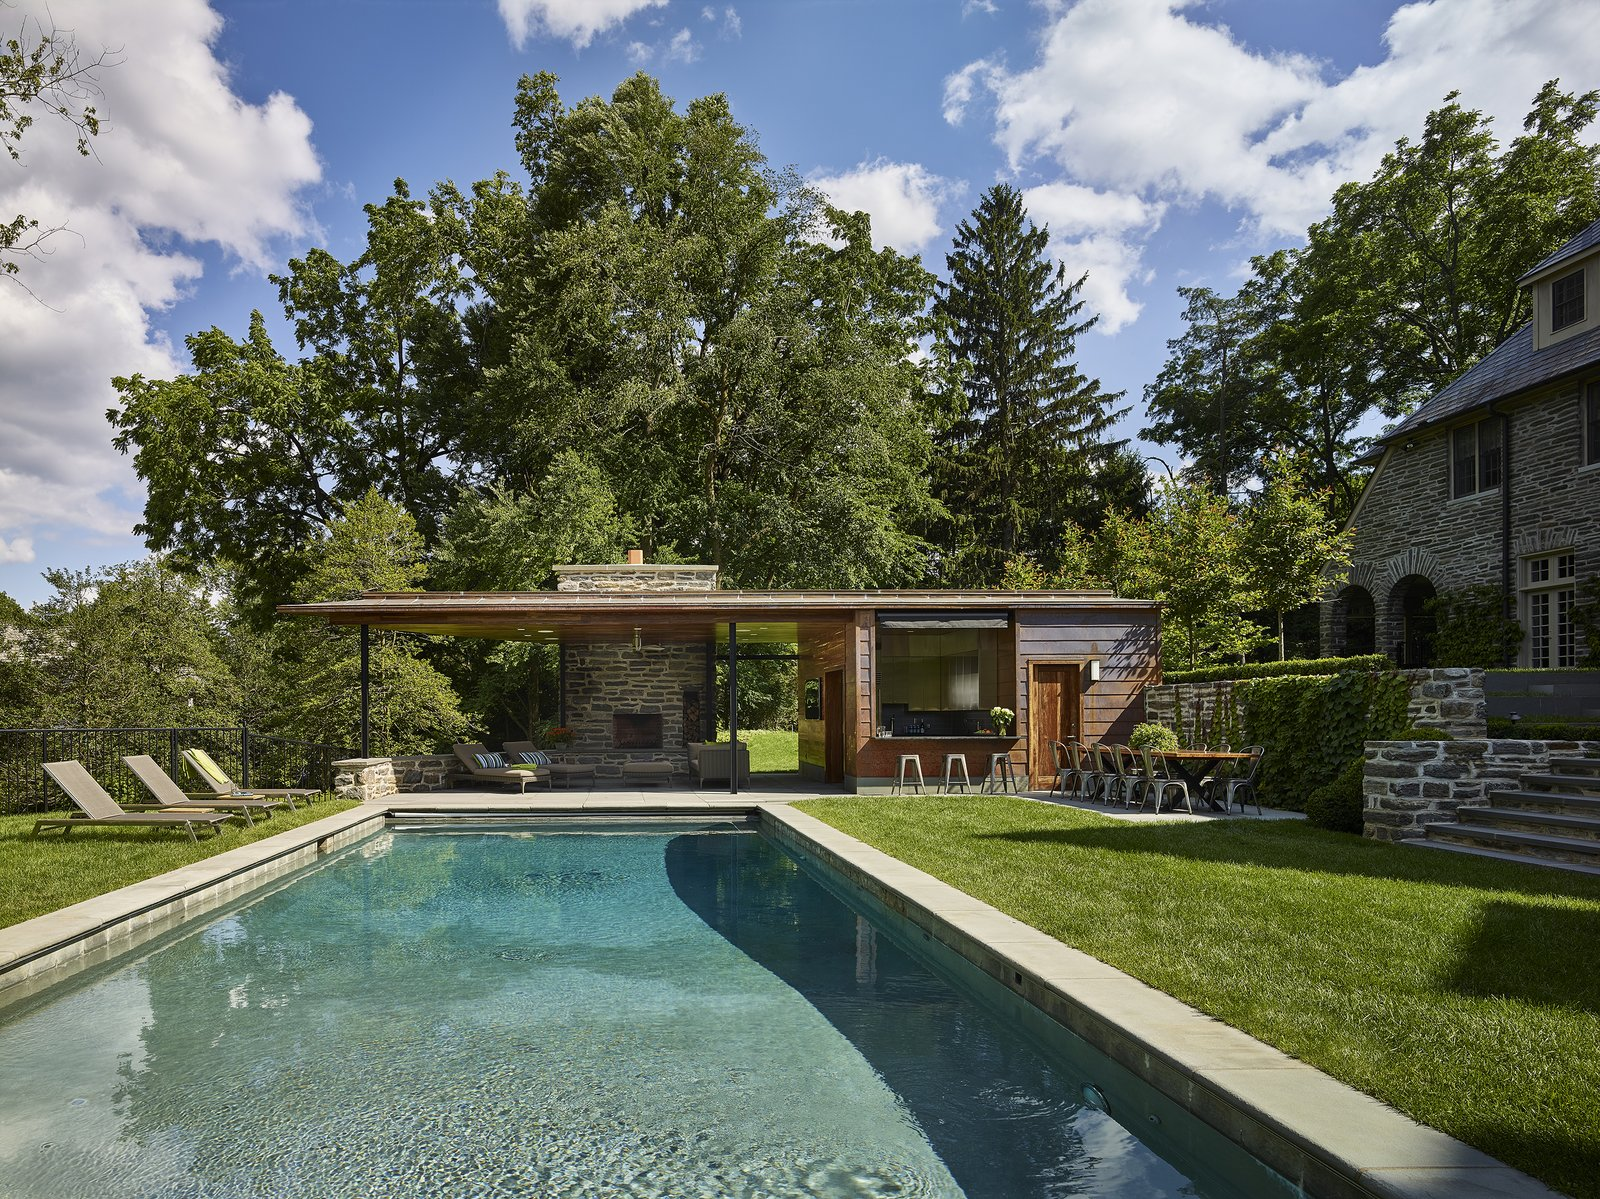 View from pool Tagged: Standard Layout Fireplace, Wood Burning Fireplace, Recliner, Limestone Floor, Back Yard, Trees, Shrubs, Table, Chair, and Outdoor.  Modern Pool House for Sloped Site by Wyant Architecture